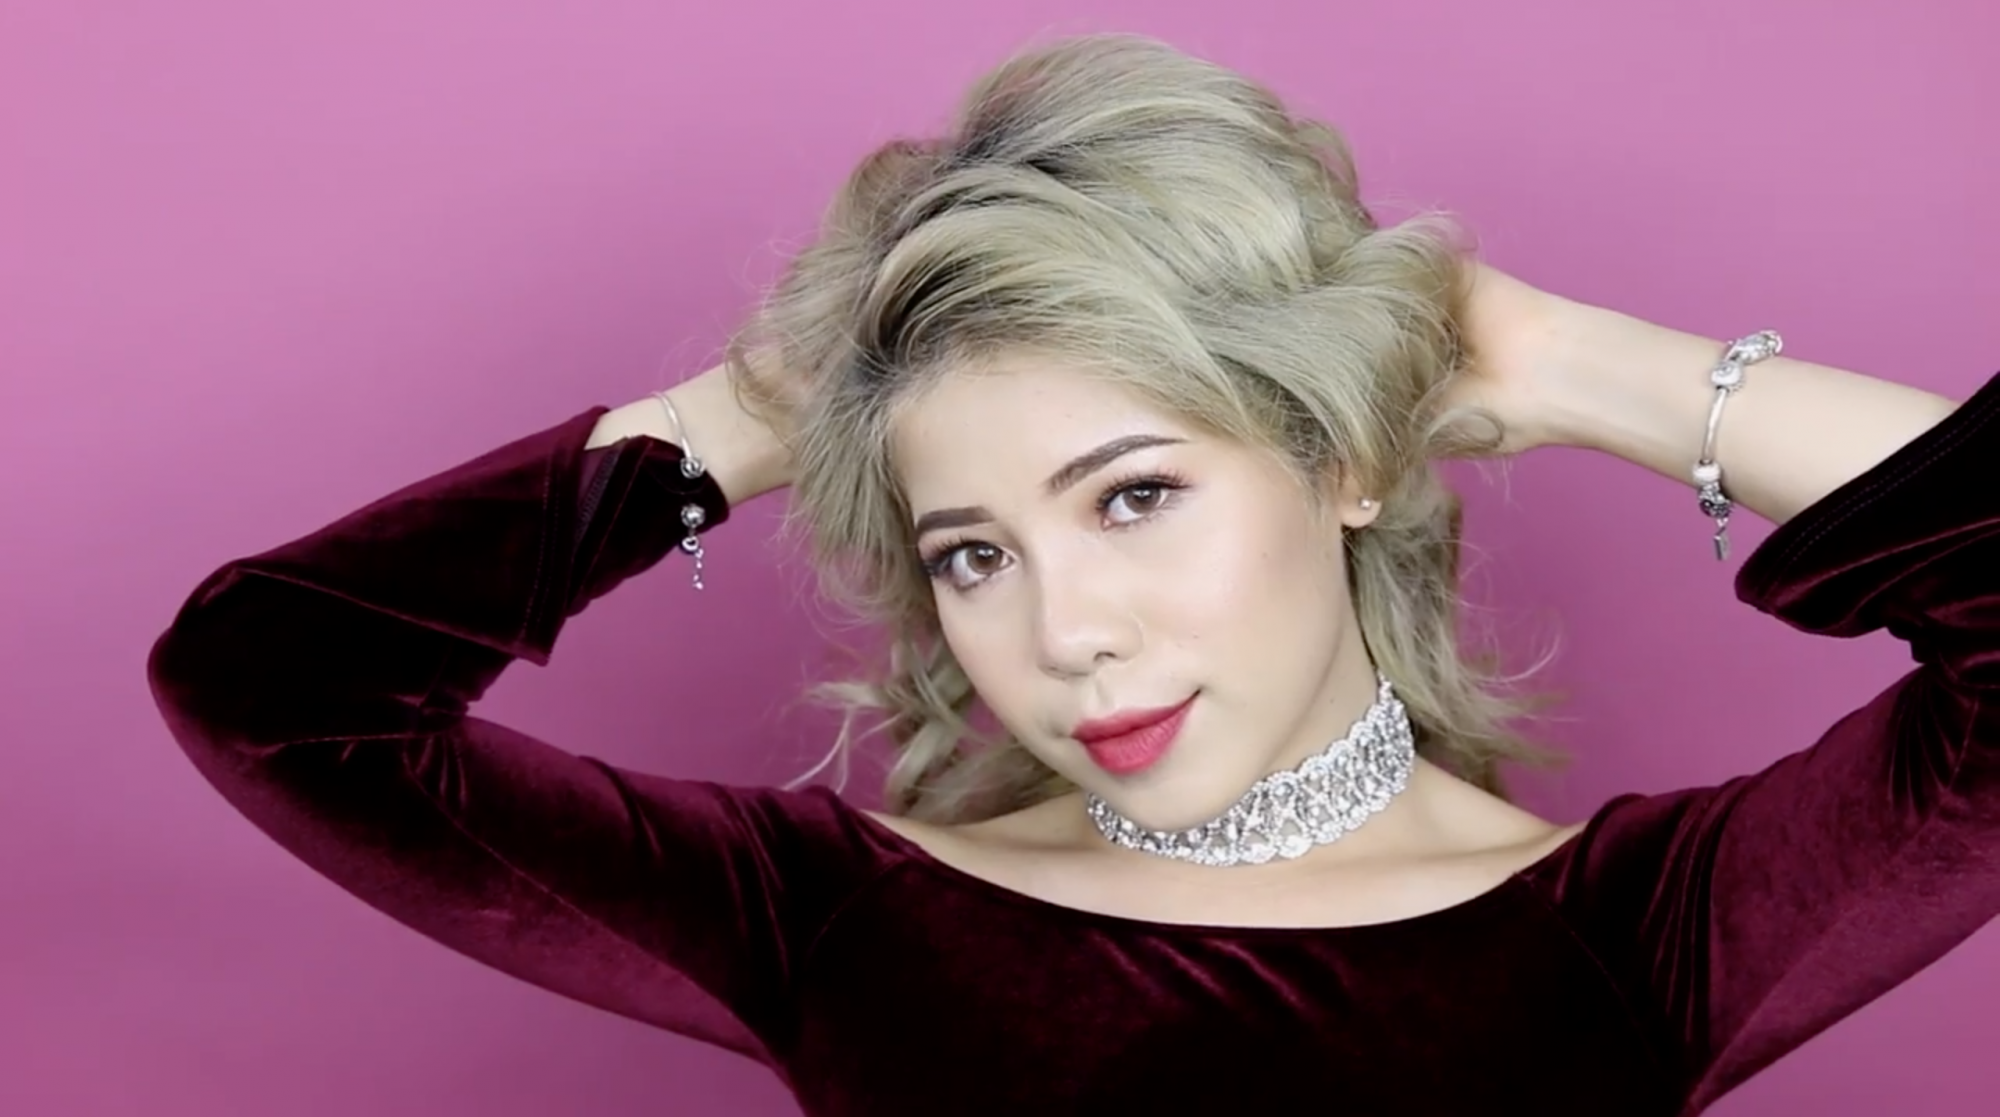 Bst touch of rose full collection của changmakeup